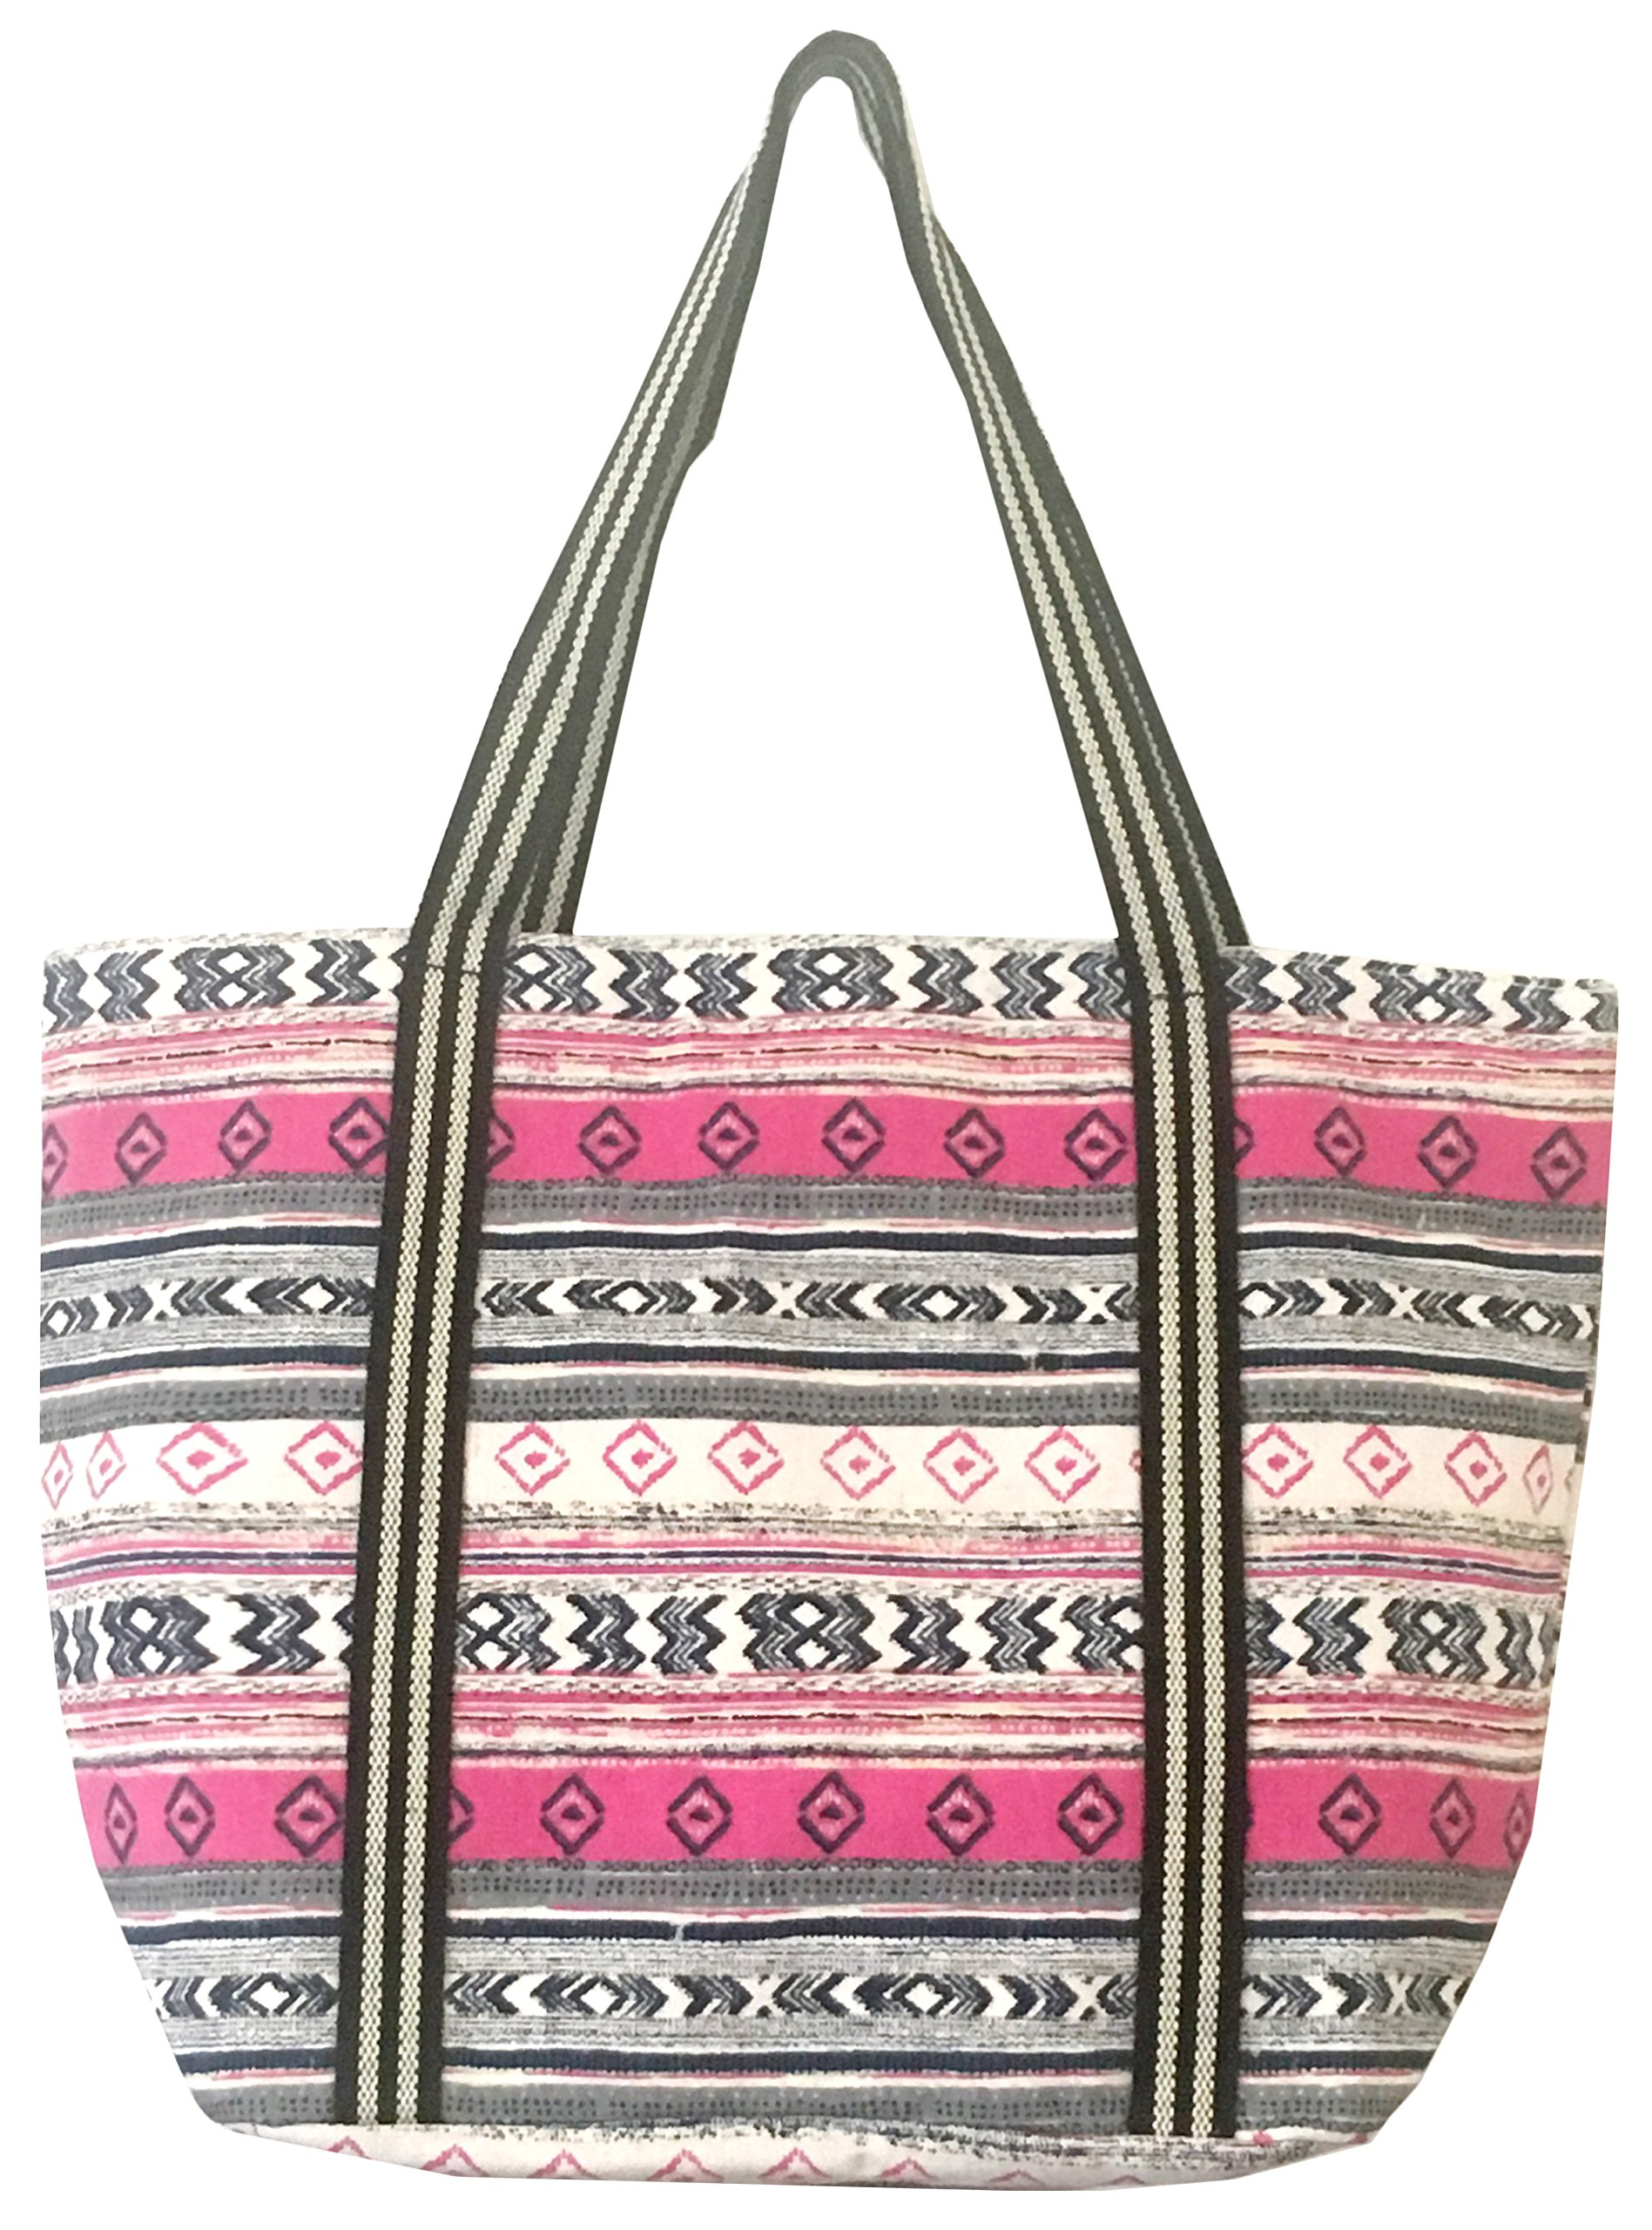 Large Utility Canvas and Nylon Travel Tote Bag For Women and Girls 15030 (B.PINK)